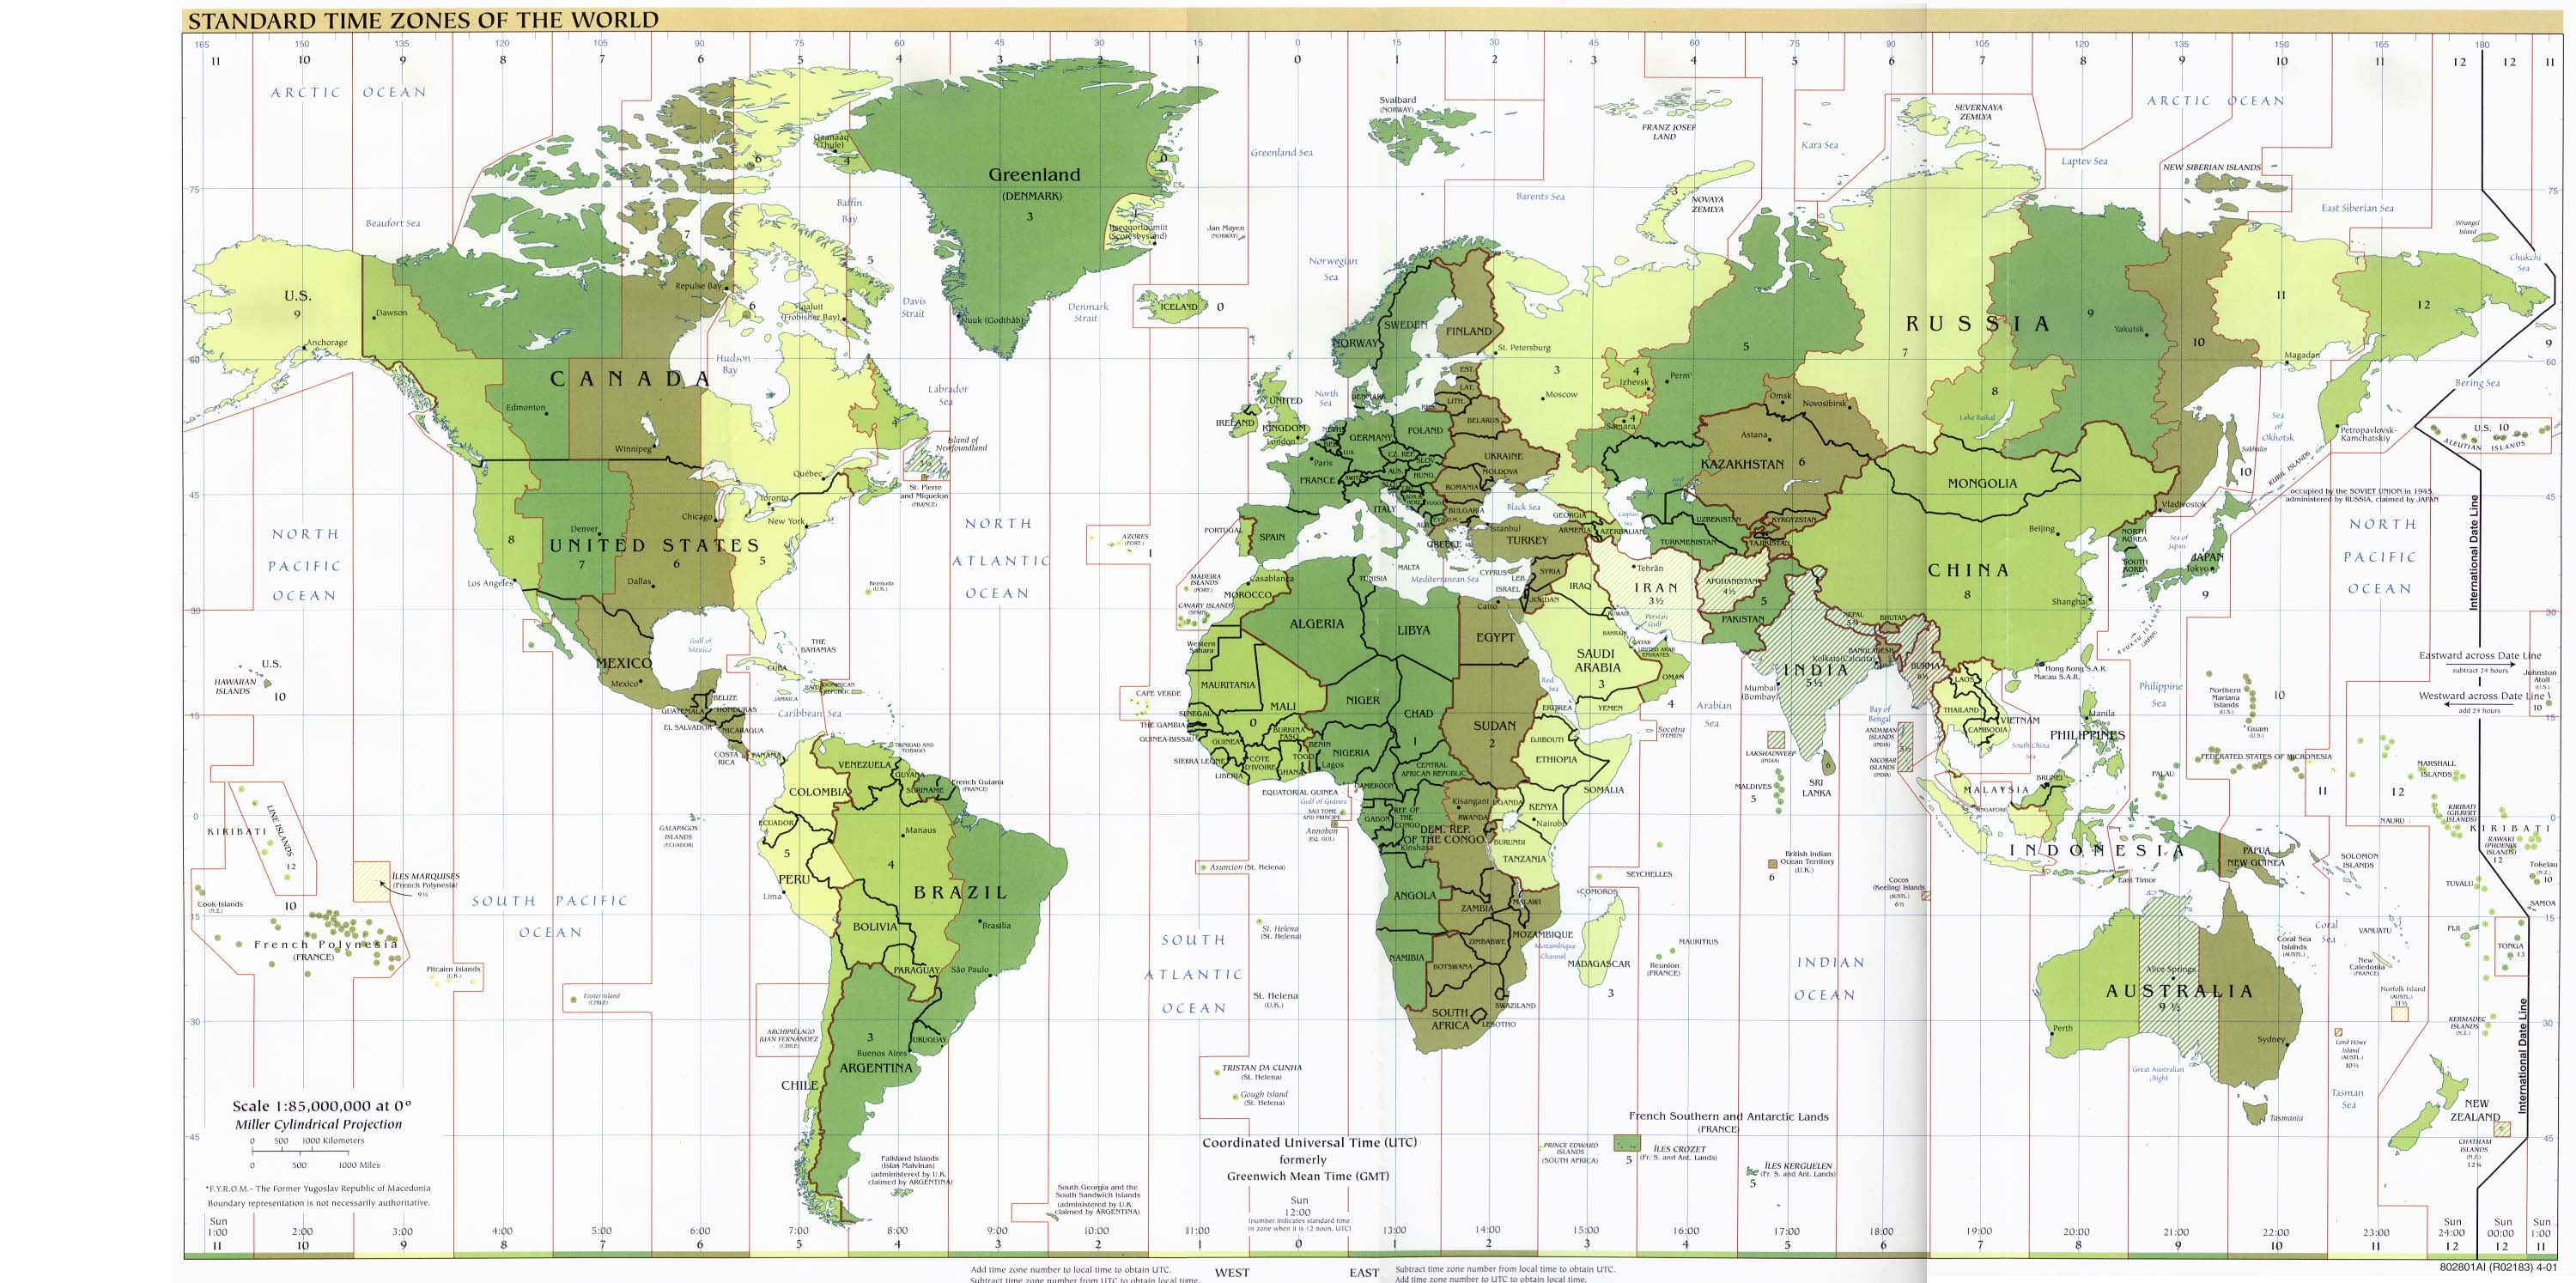 World maps perry castaeda map collection ut library online standard time zones of the world gumiabroncs Gallery